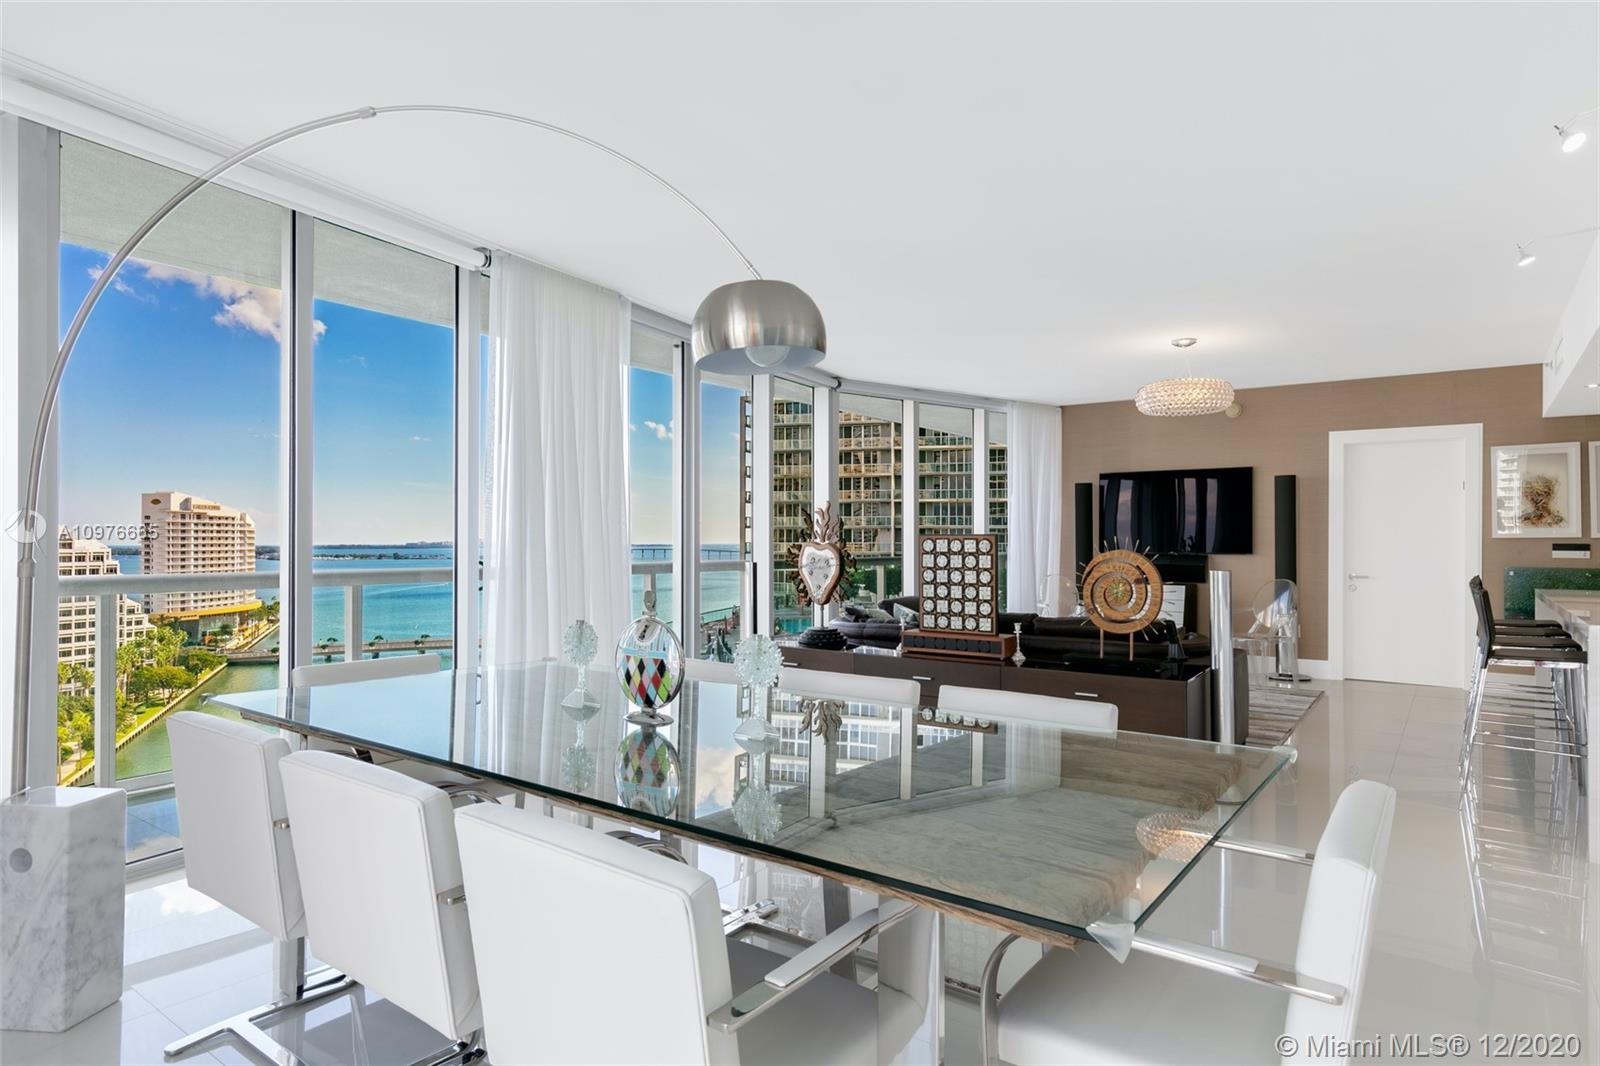 One-of-a-kind, impeccably maintained, highly upgraded 3bed/2.5bath in Icon Brickell. One of the best 3-bed layouts in the Brickell marketplace w/ bay views from all living & bedrooms. Just renovated luxurious kitchen & stunning Master Bath! White Porcelain floors in living areas & wood in beds, motorized blinds & sheer curtains. Lurtron lighting system, Nest digital thermostat w/ smartphone app, media wall w TV/Bang & Olufson audio system, custom closets, 2nd garage space & furniture can be purchased separately.